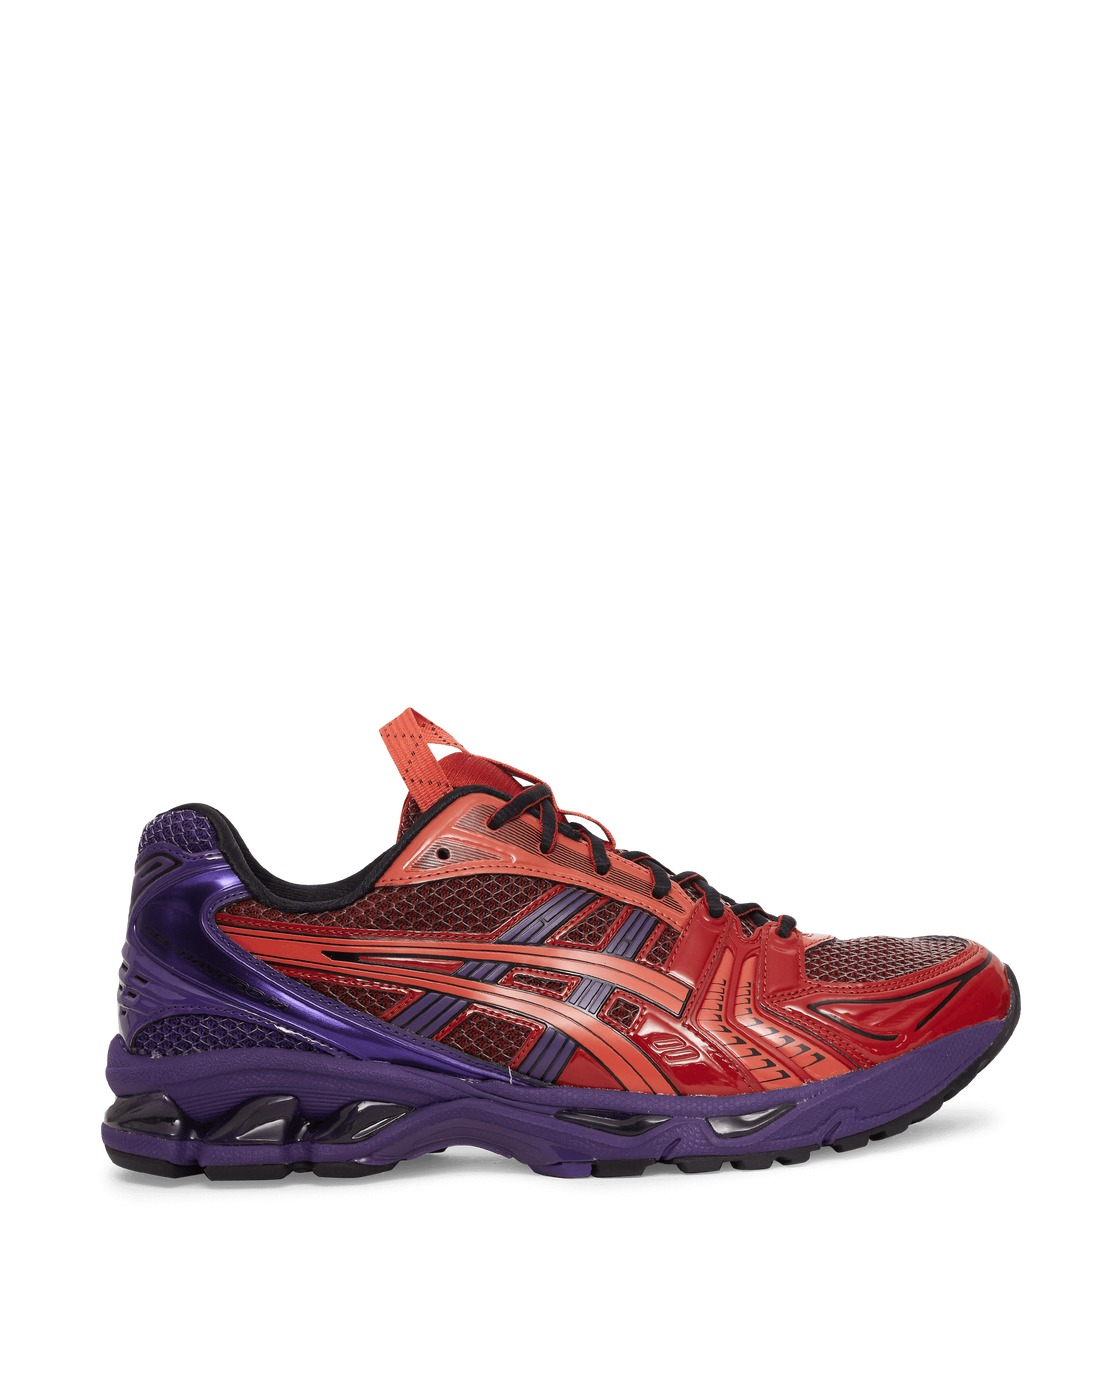 Asics Ub1 S Gel Kayano 14 Sneakers Classic Red/Asics Blue